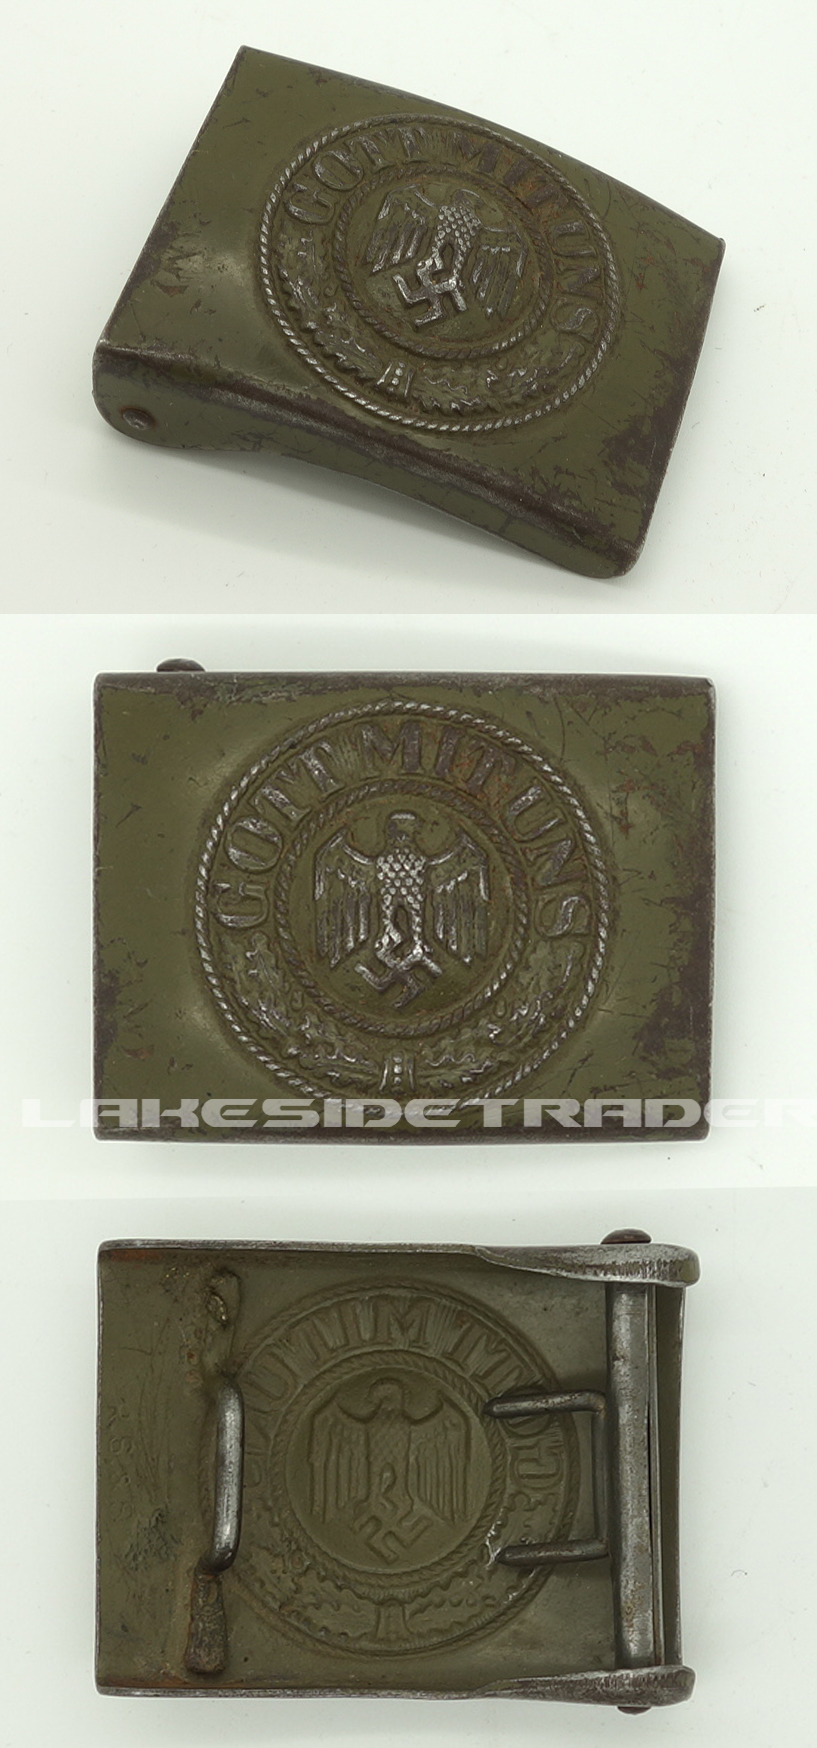 Army Buckle by R.S. & S.